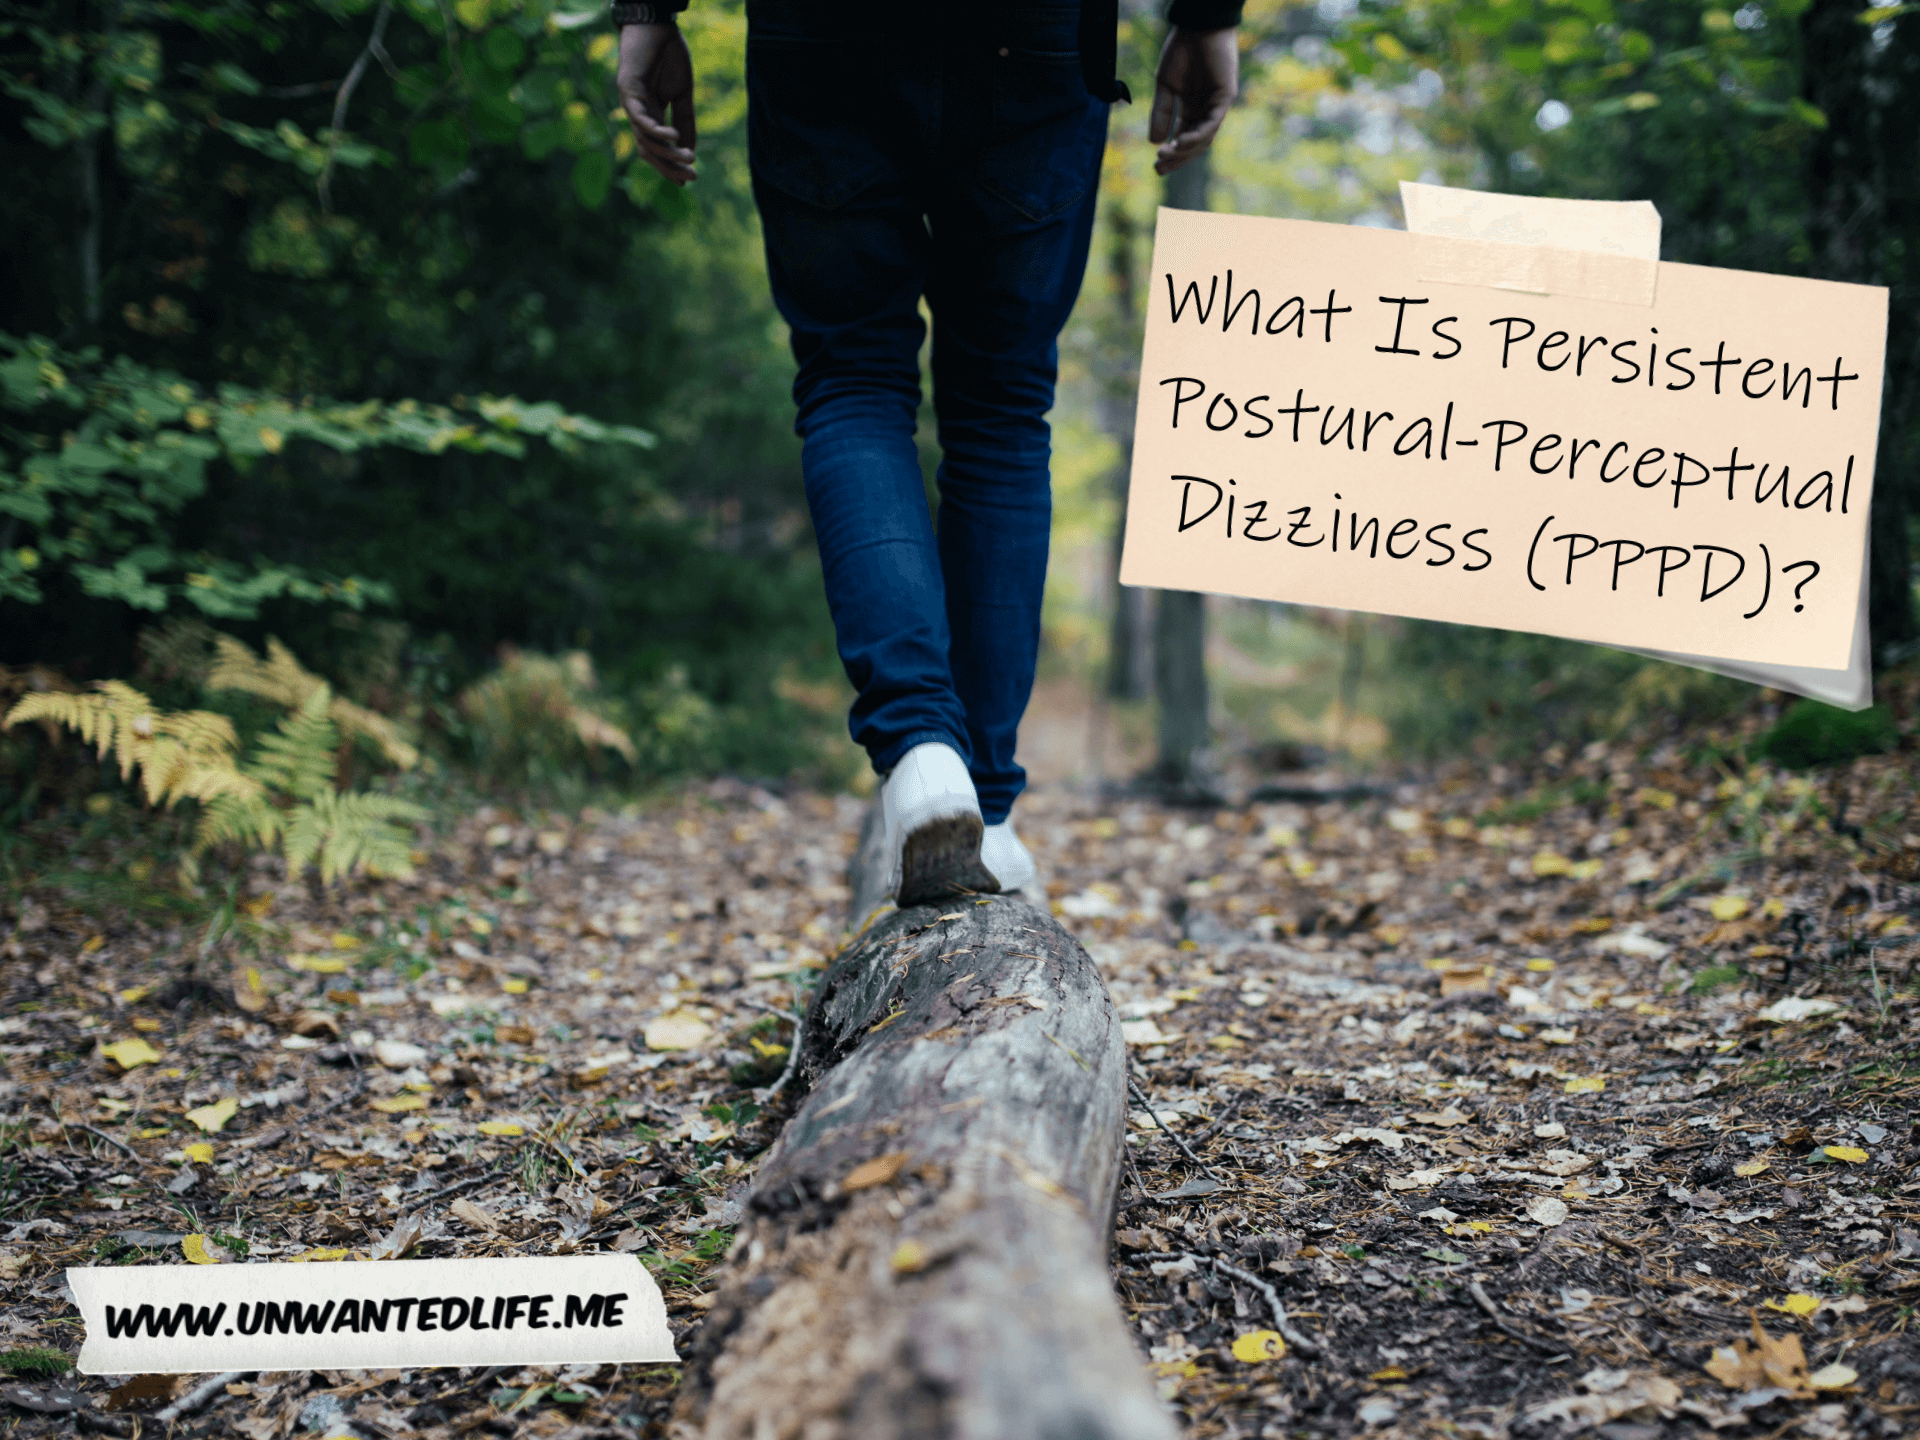 A photo of a white man waking across a fallen three trunk to represent balance with the title of the article - What Is Persistent Postural-Perceptual Dizziness (PPPD)? - in the right corner of the image